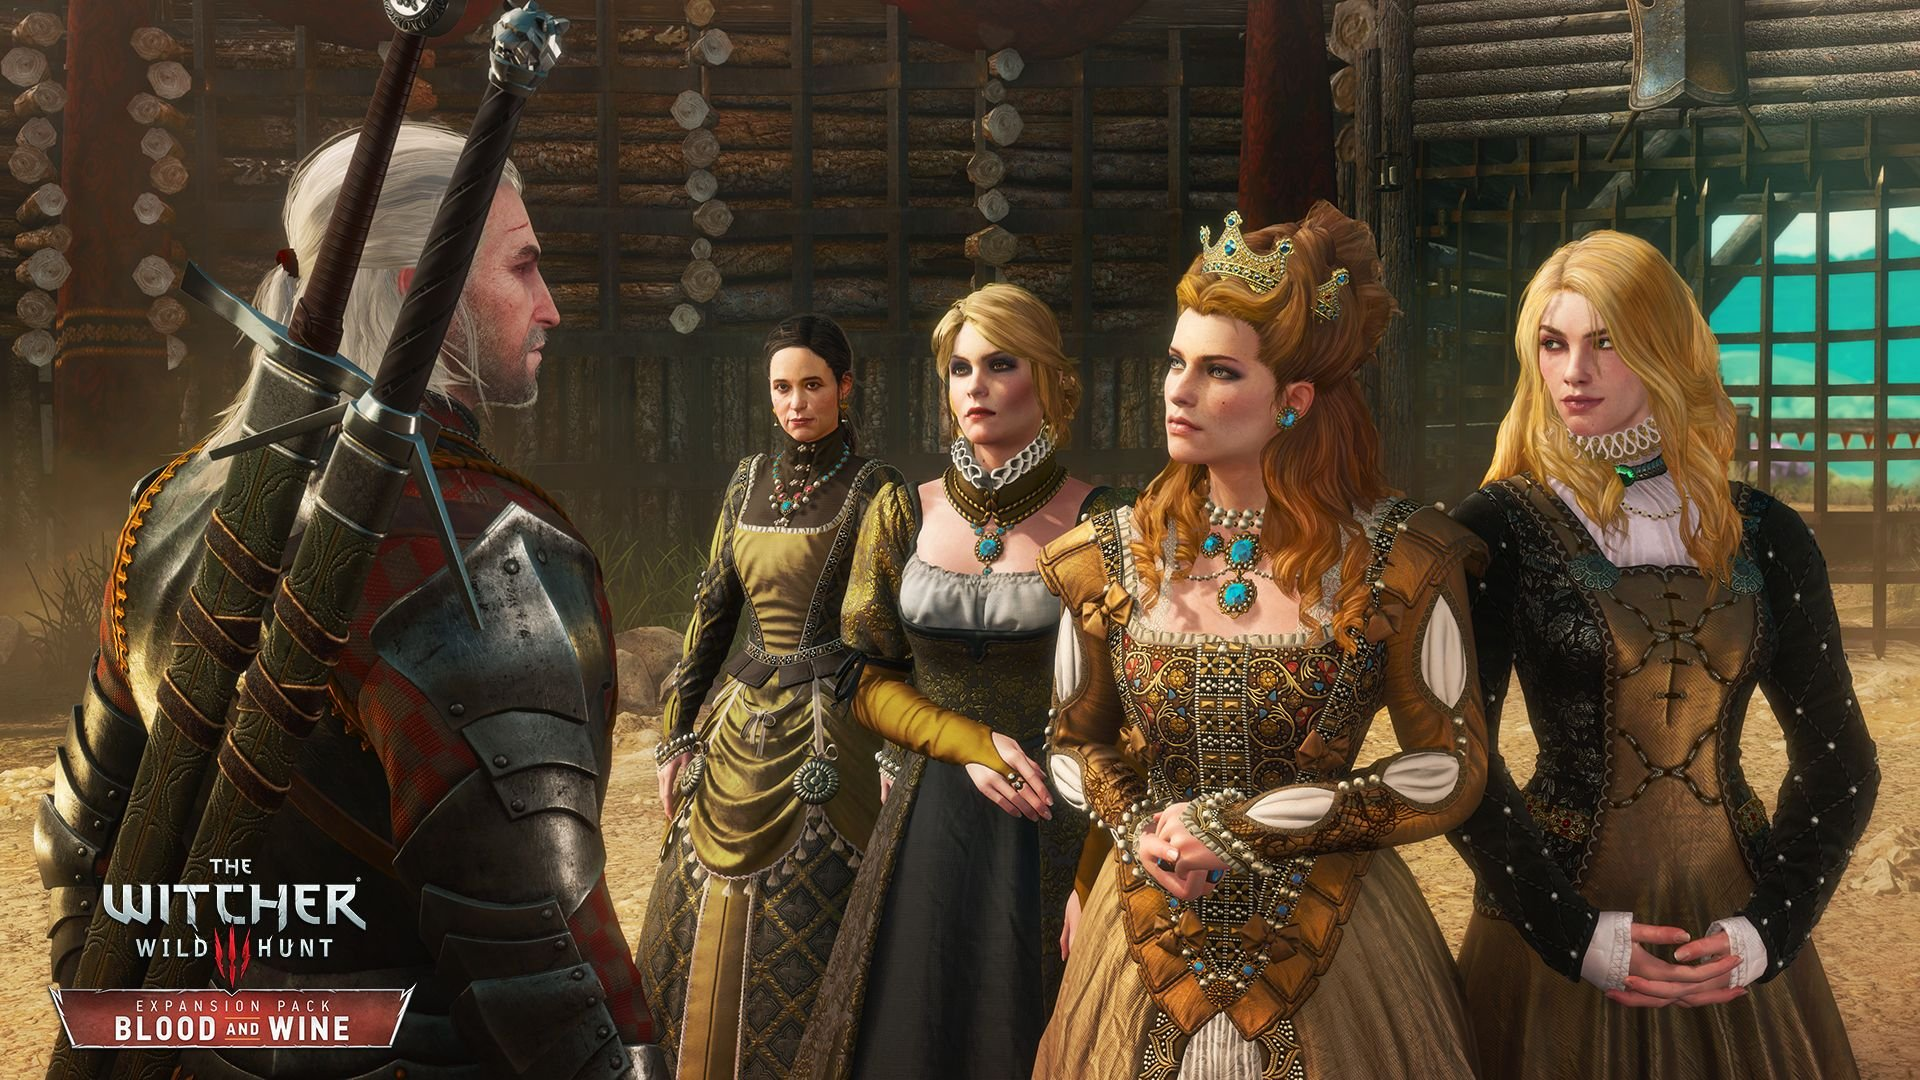 The Witcher 3: Blood and Wine (May 30th)